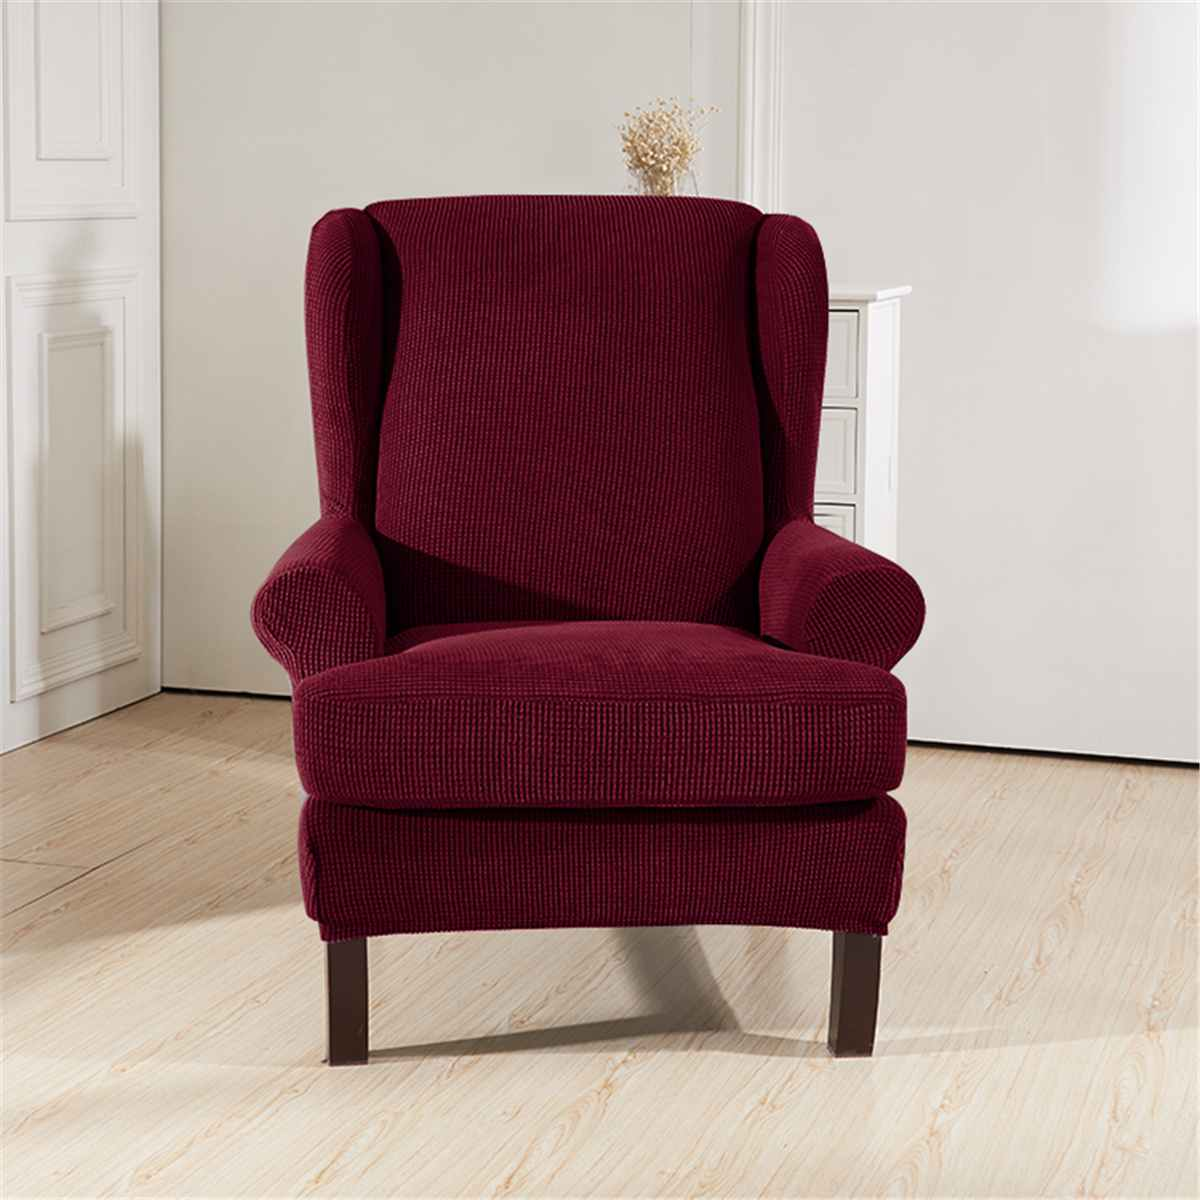 Strange Elastic Armchair Wingback Wing Sofa Back Chair Cover Sloping Arm King Back Chair Cover Stretch Protector Slipcover Protector Slipcovers For Armchairs Gmtry Best Dining Table And Chair Ideas Images Gmtryco